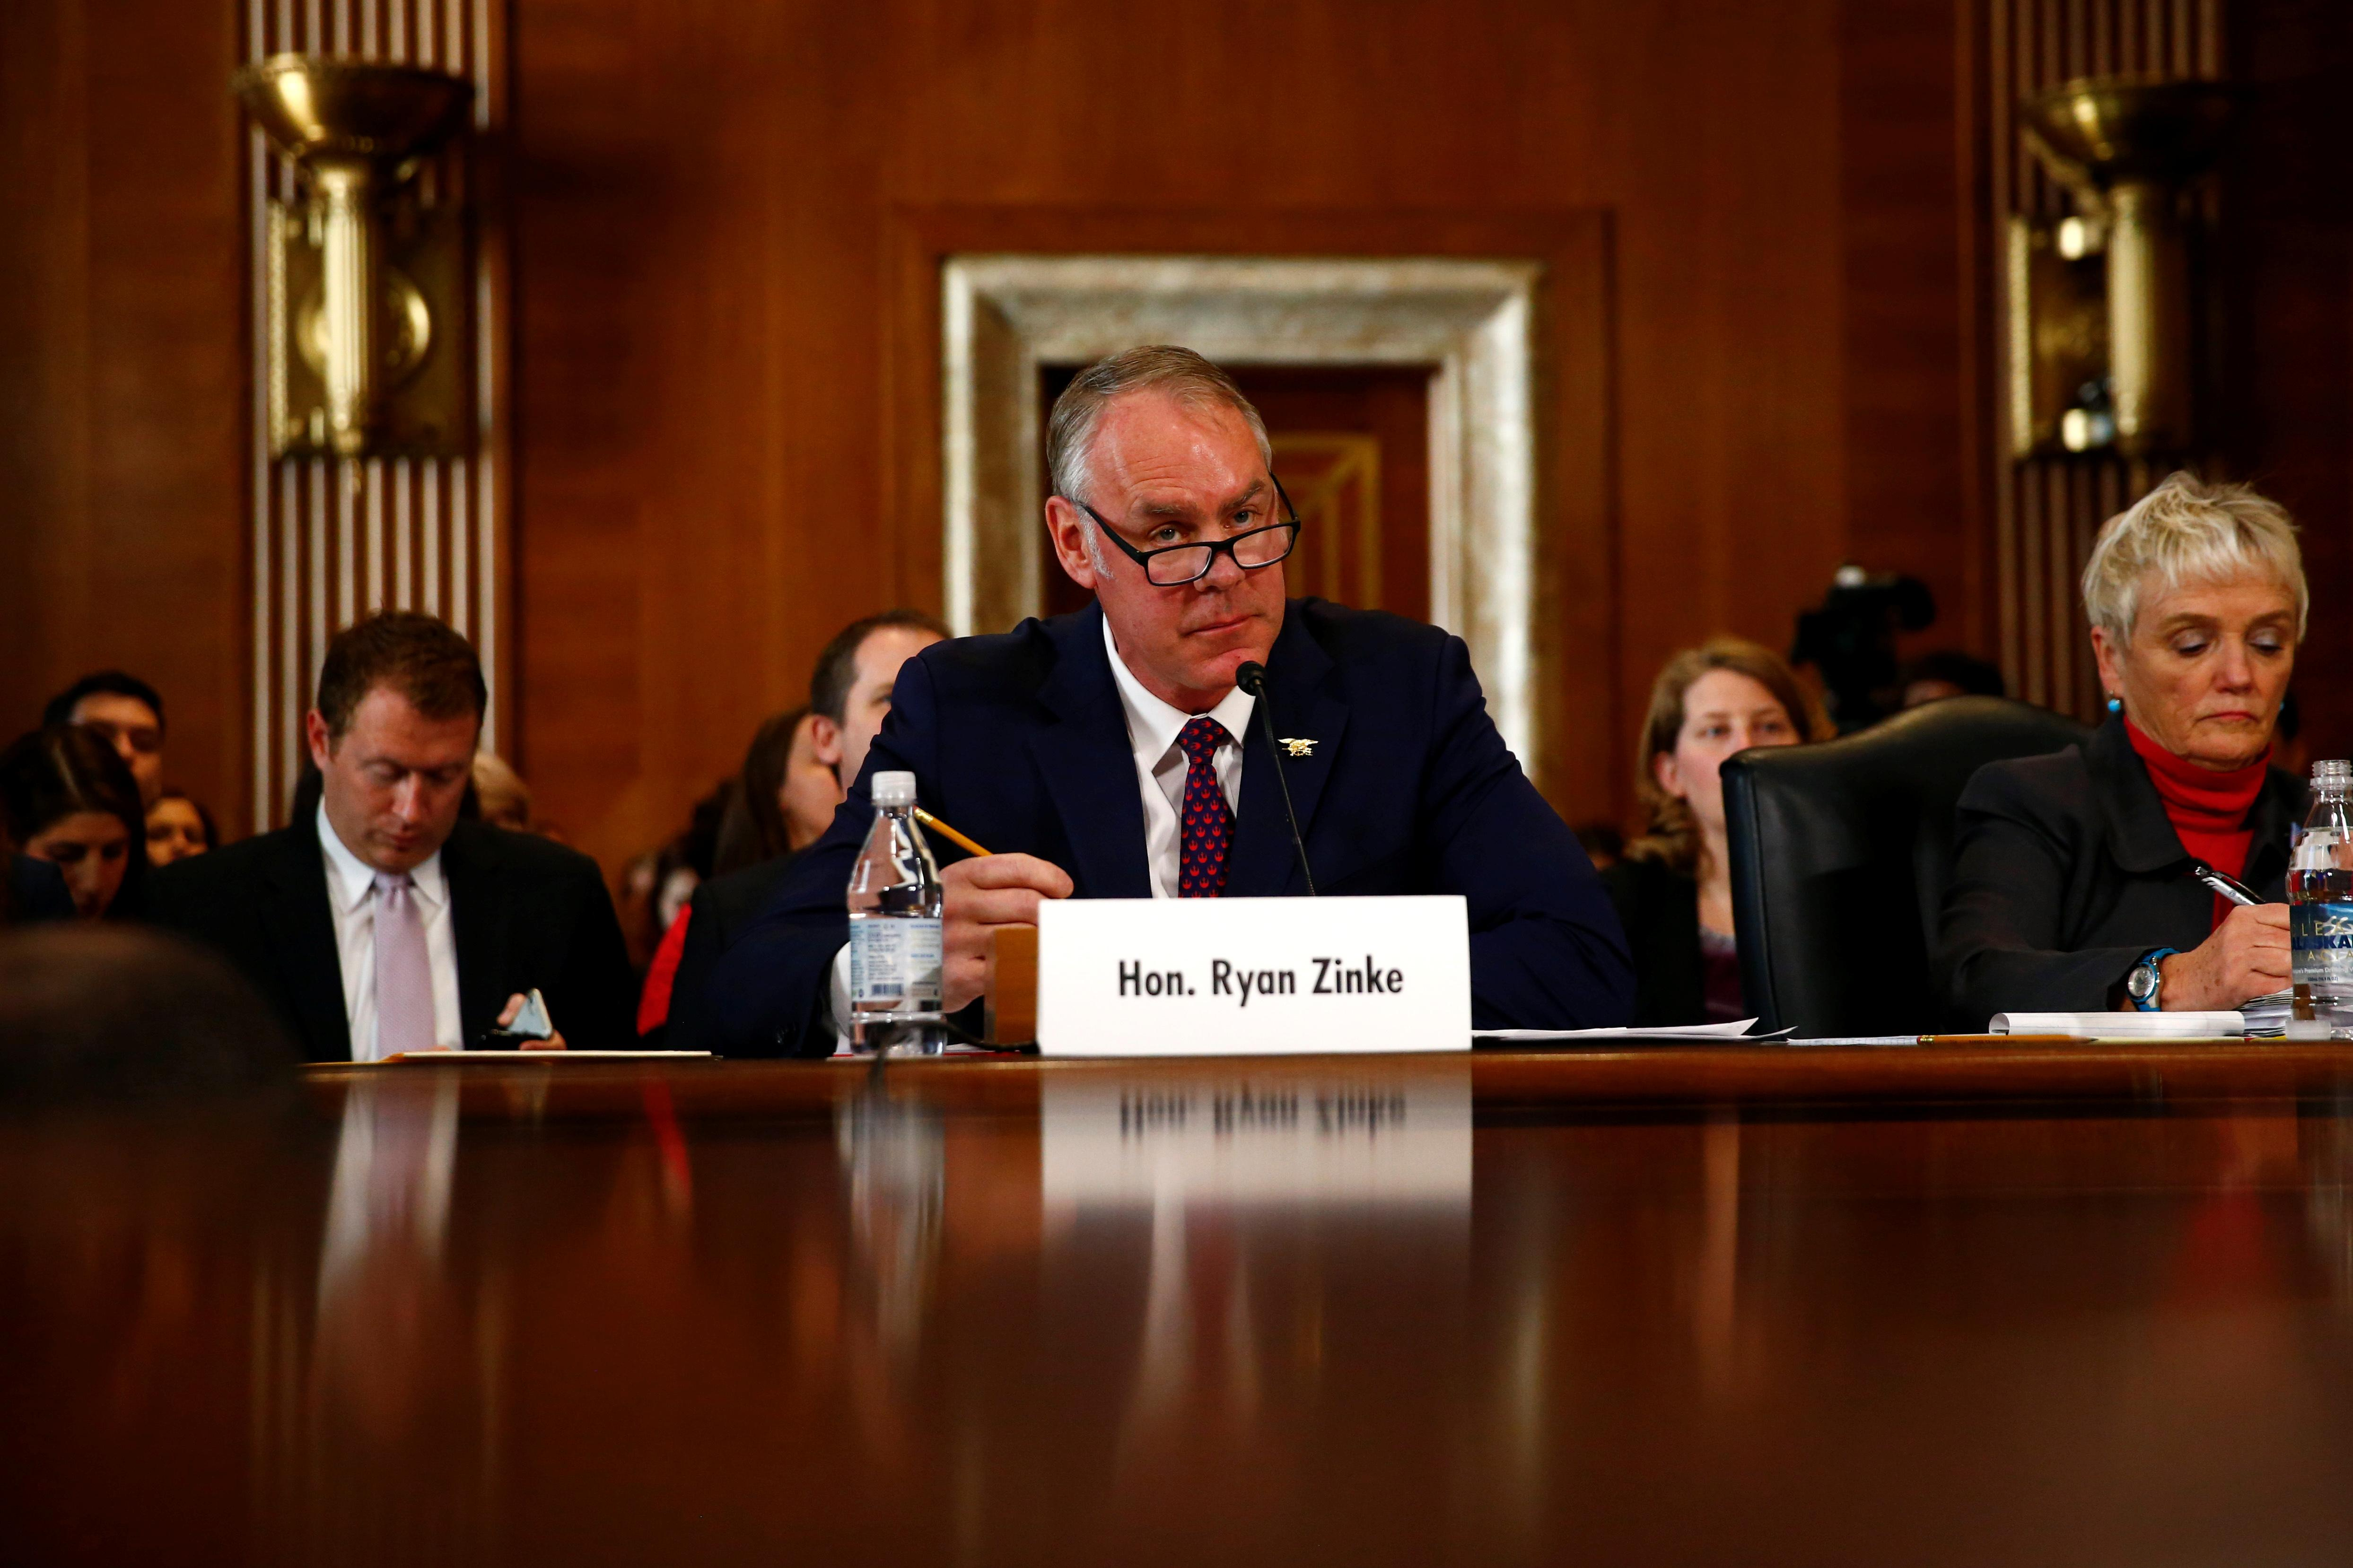 U.S. Secretary of the Interior Ryan Zinke testifies in front of the Senate Committee on Energy and Natural Resources on Capitol Hill in Washington, U.S. March 13, 2018. Eric Thayer